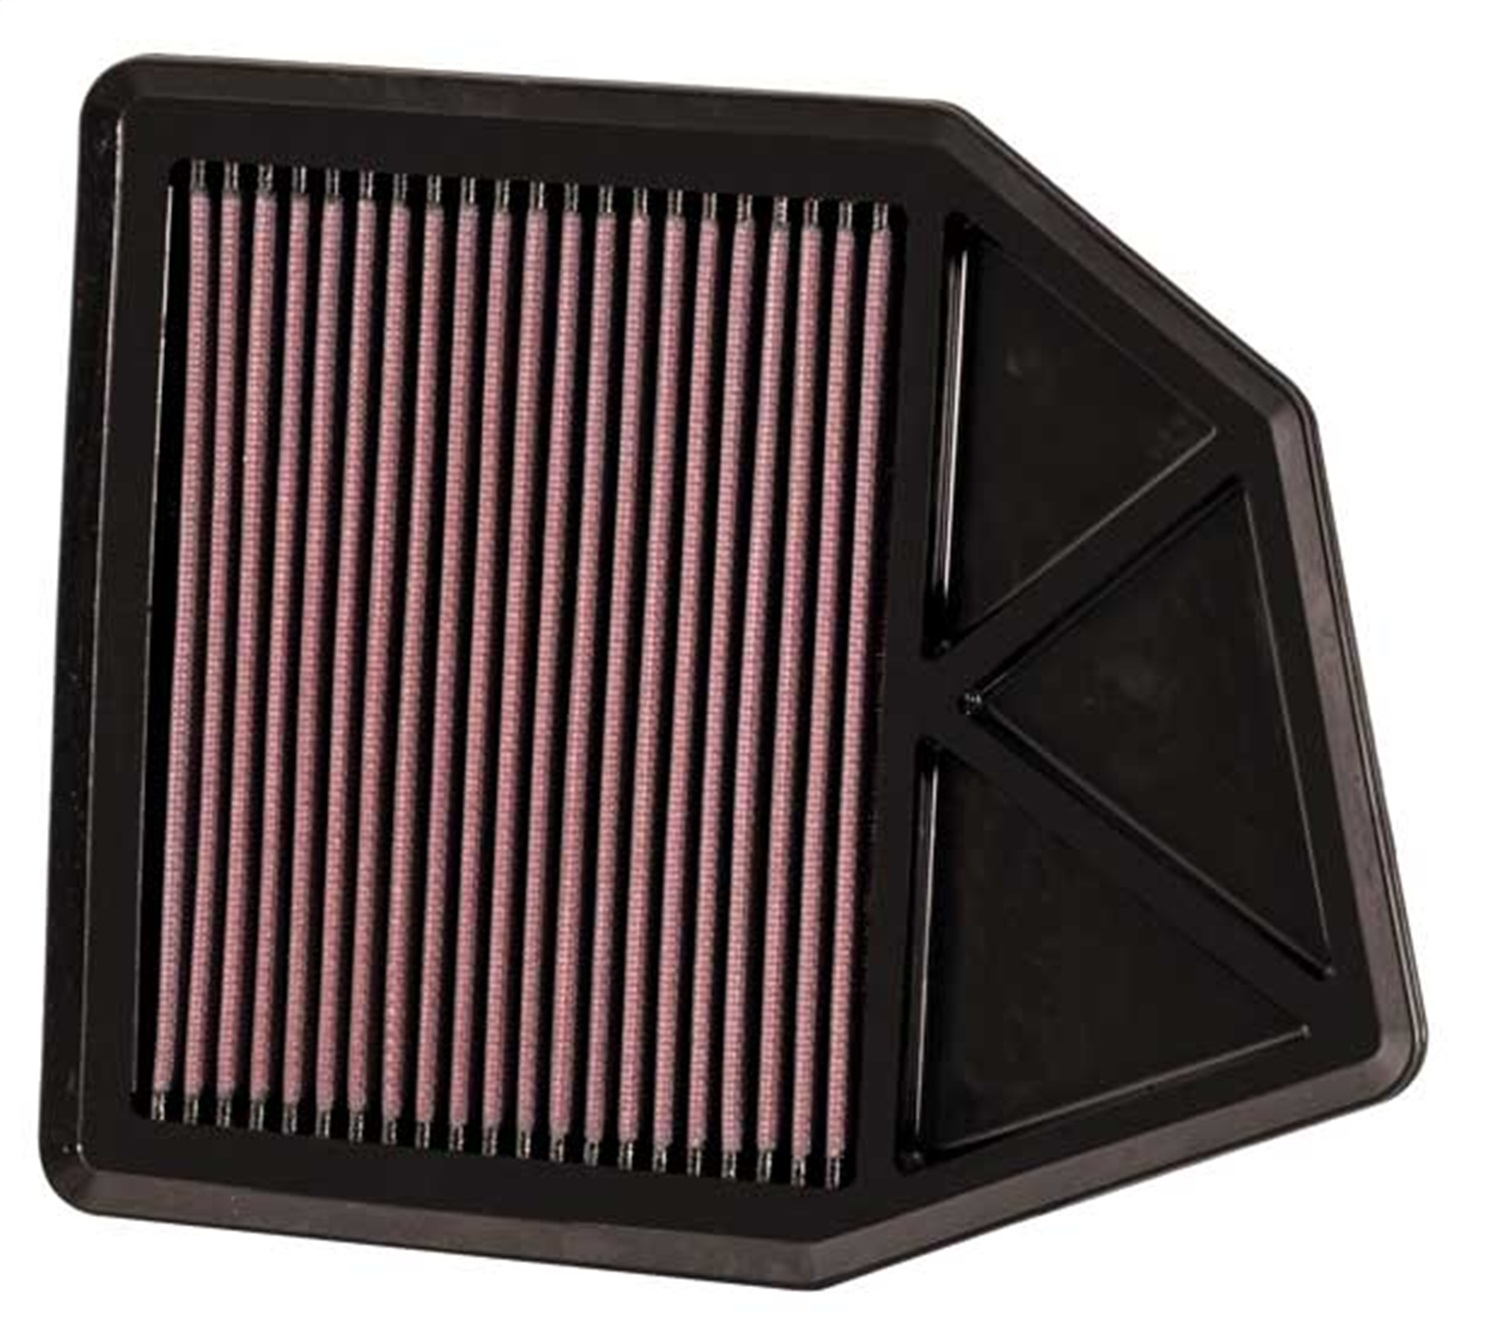 K&N Filters 33-2402 Air Filter Fits 08-15 Accord Crosstour 33-2402